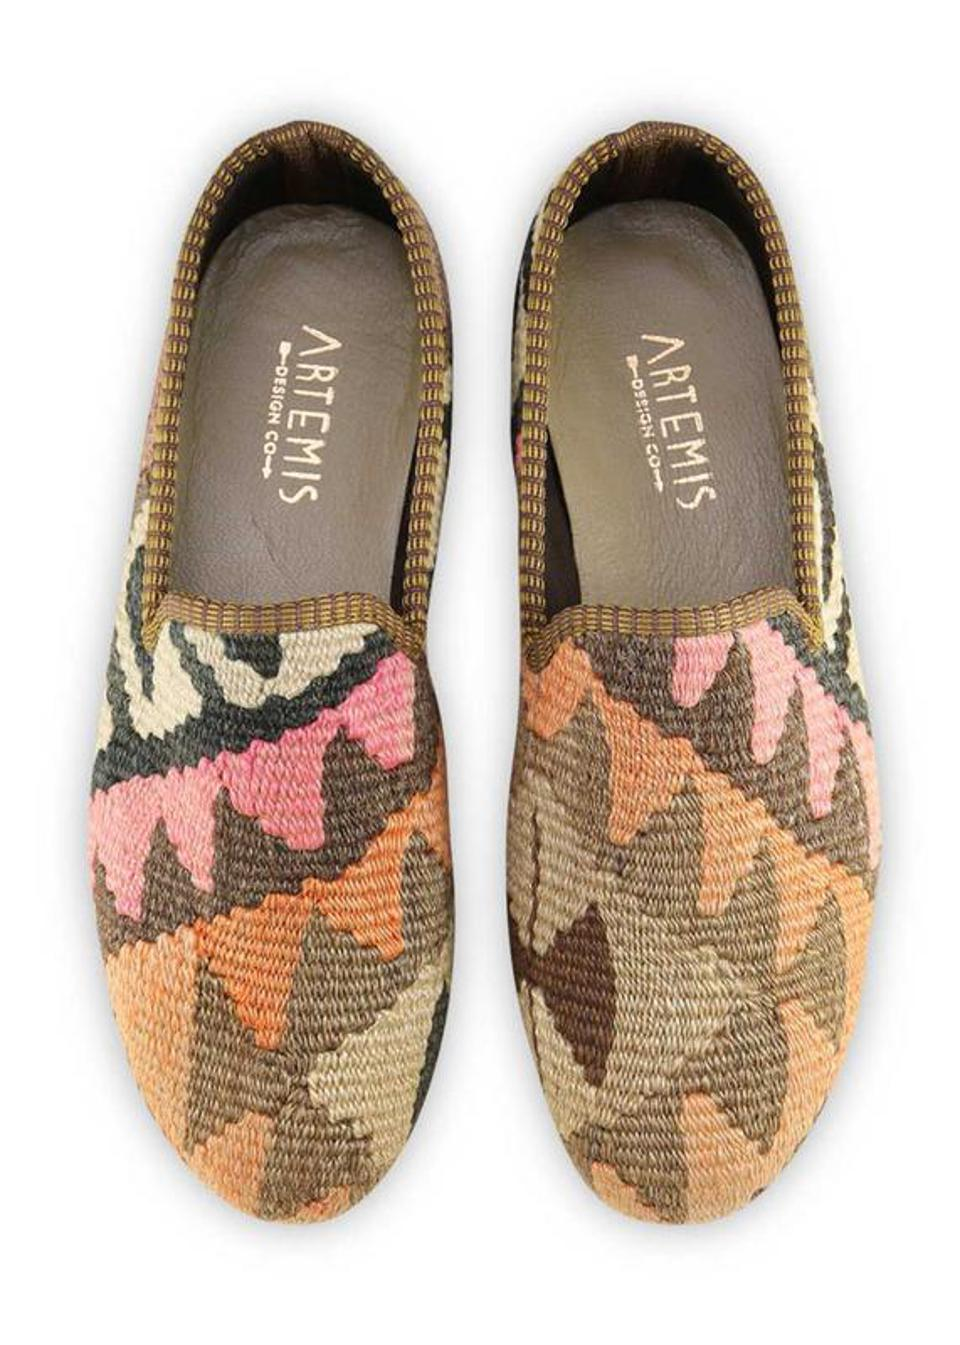 Artemis Design Co. Men's Kilim Loafer